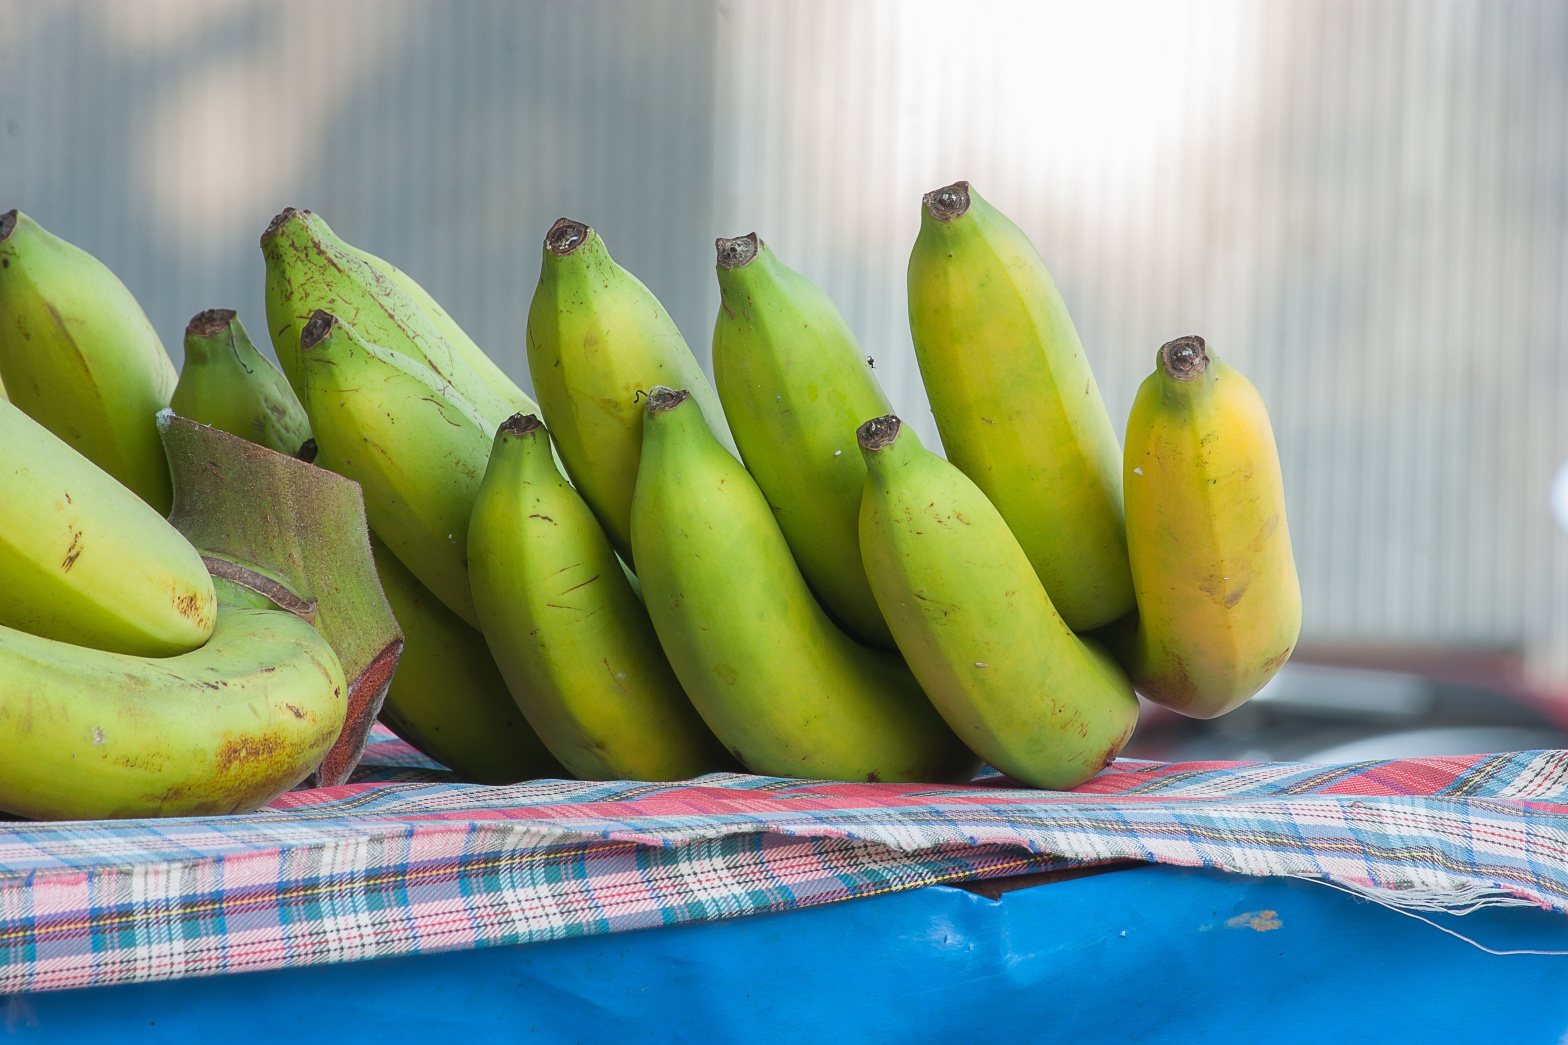 Resistant starch is good for the gut